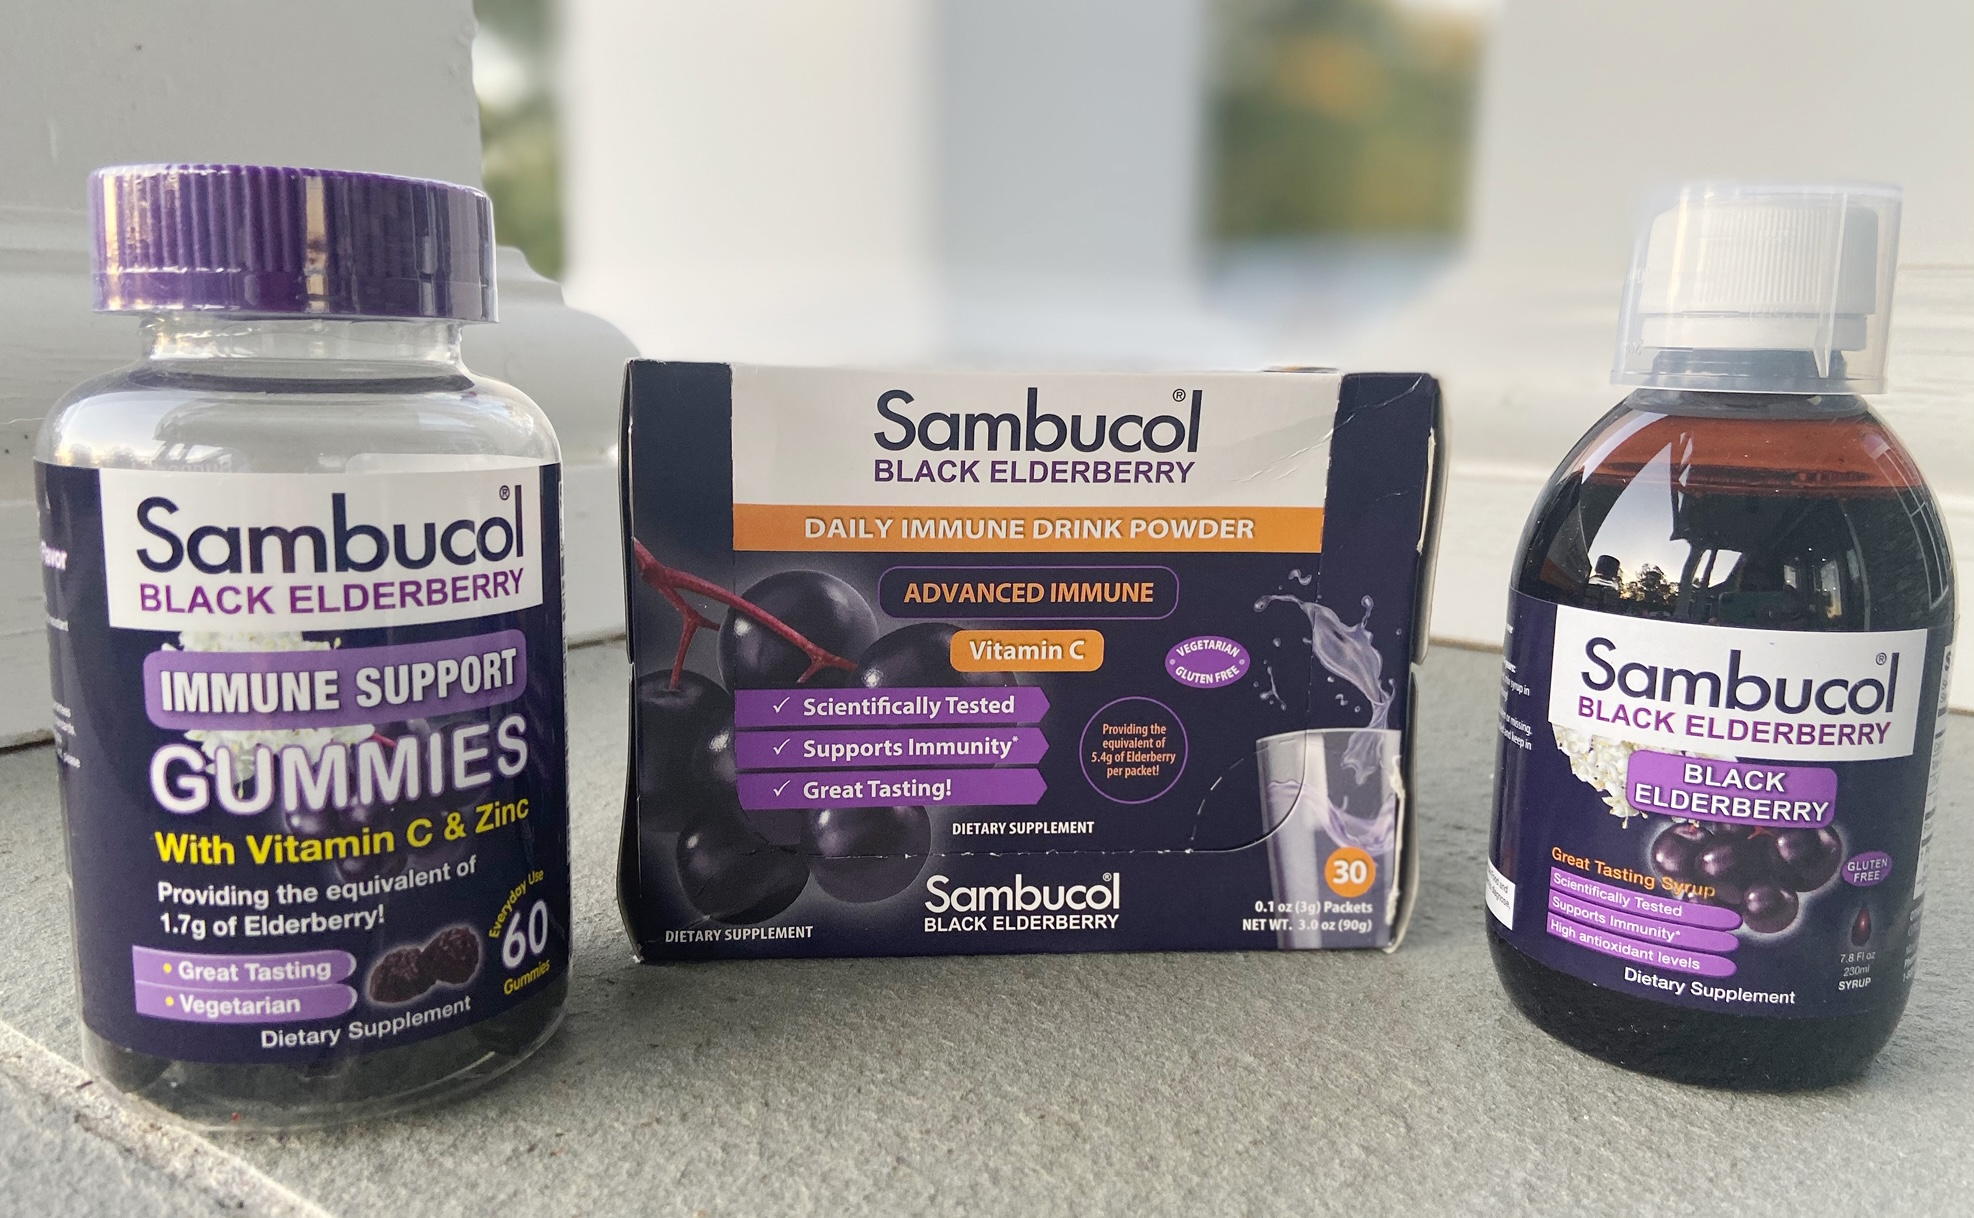 Sambucol Black Elderberry products